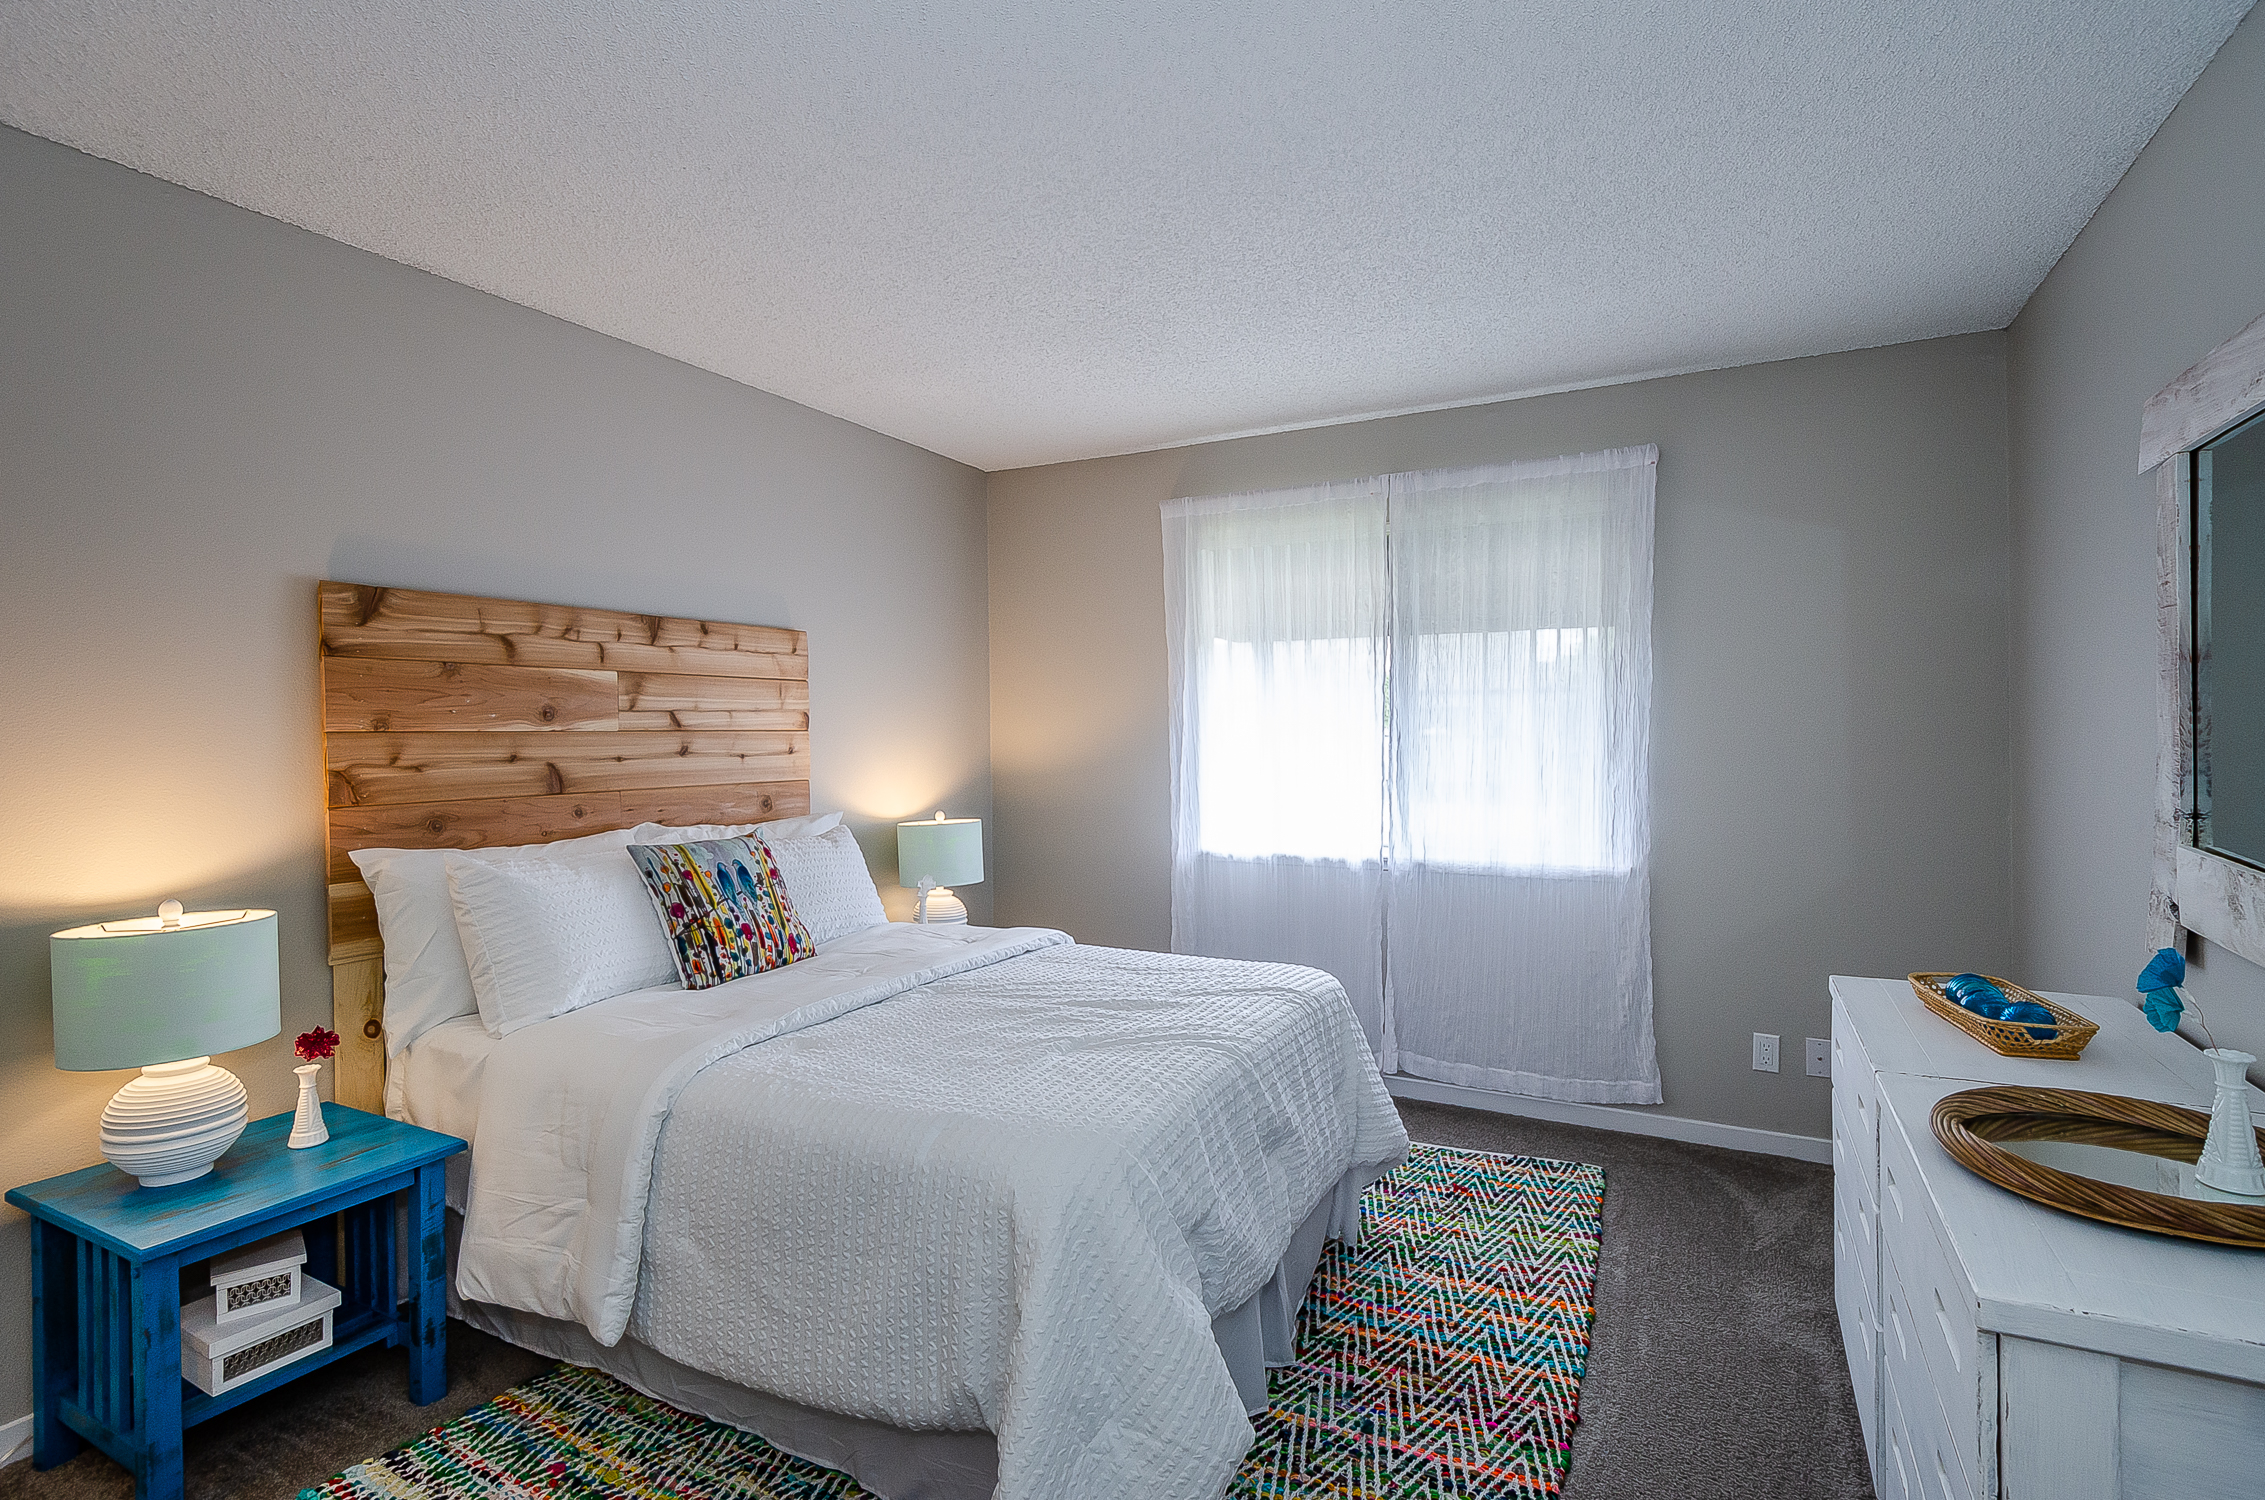 carpeted bedroom with window shows plenty of room for a large bed, a wide dresser, and 2 nightstands